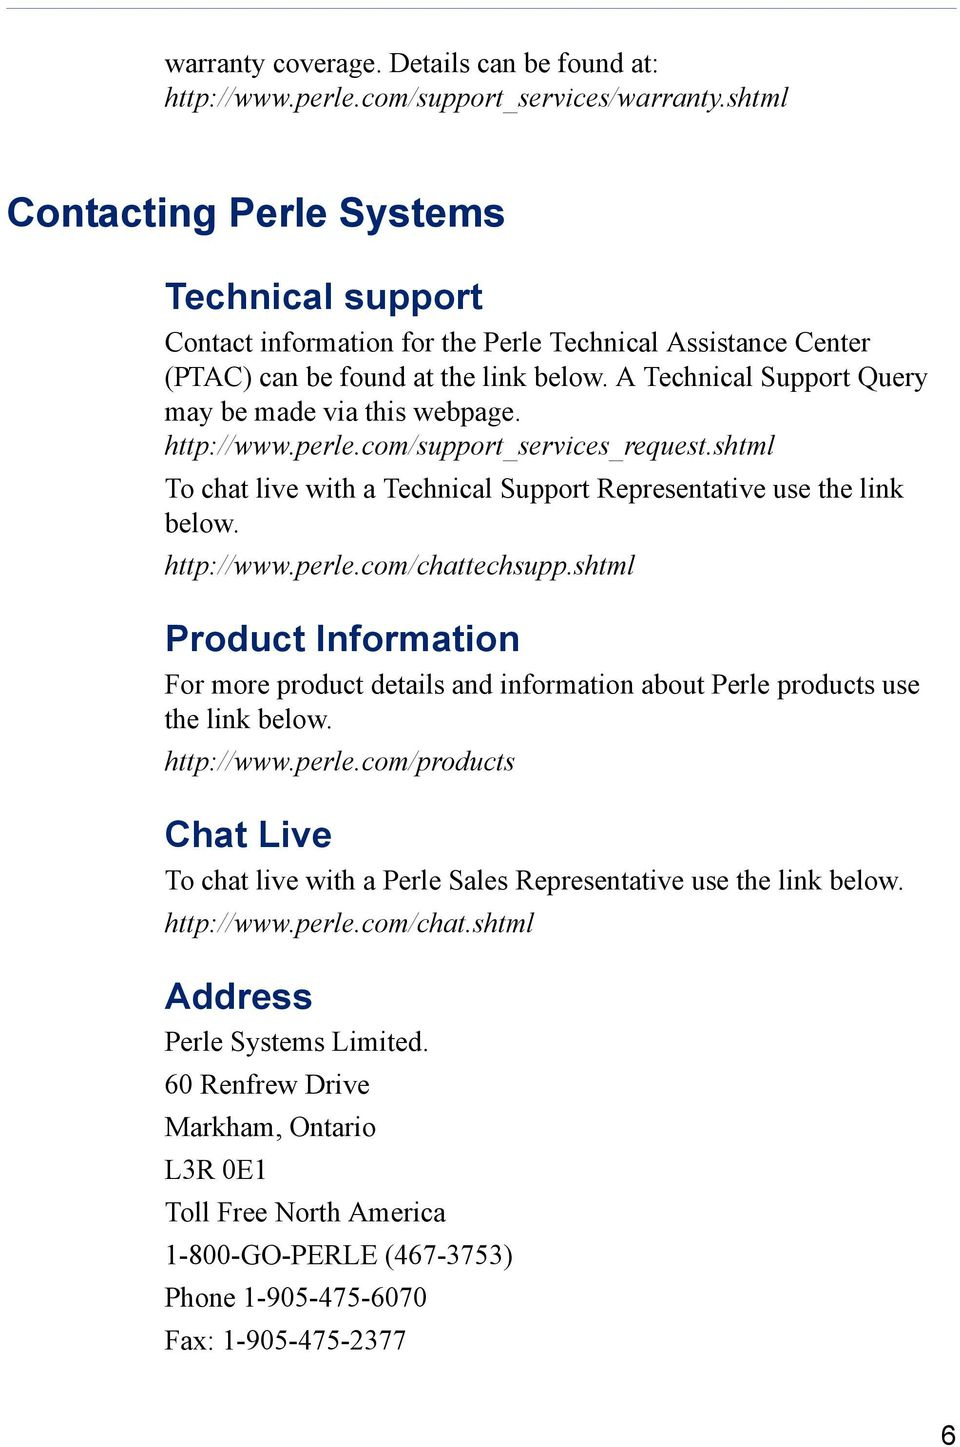 A Technical Support Query may be made via this webpage. http://www.perle.com/support_services_request.shtml To chat live with a Technical Support Representative use the link below. http://www.perle.com/chattechsupp.